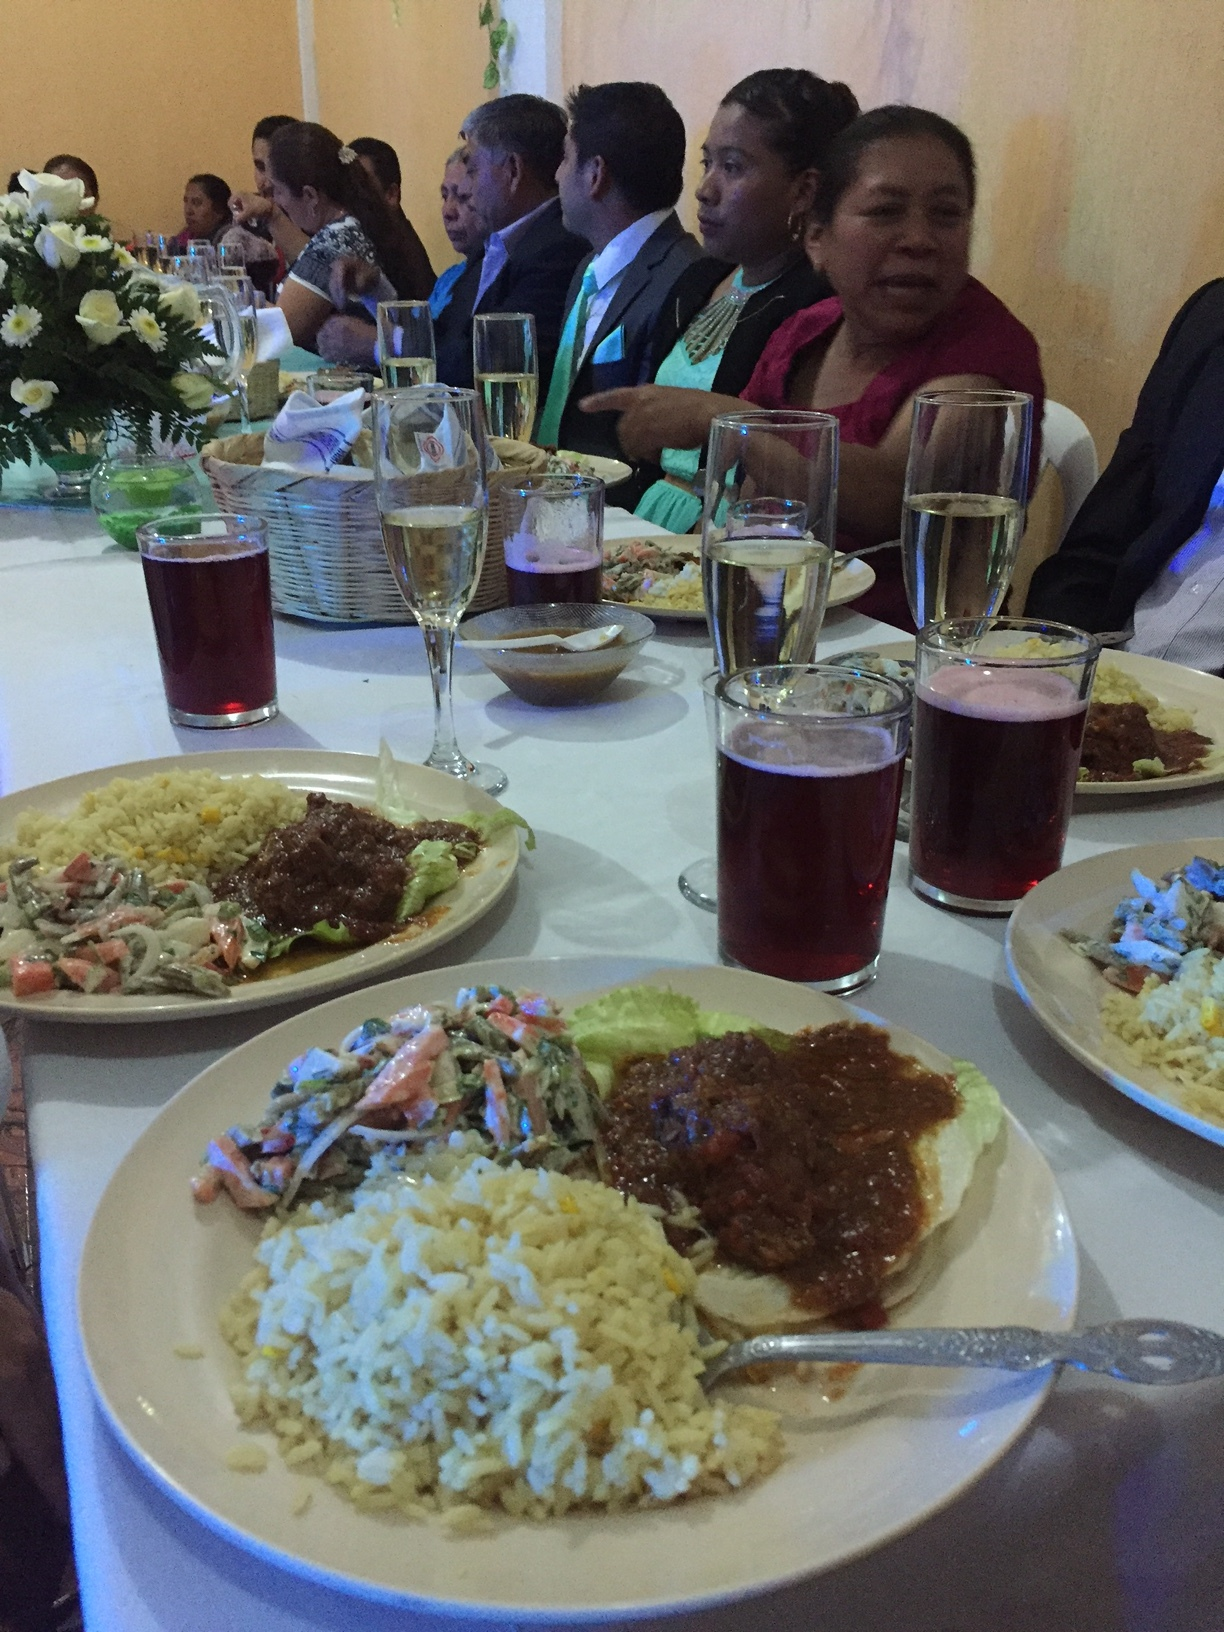 The traditional wedding meal. Estofado (beef stew) with rice, vegetable salad, and tortillas.